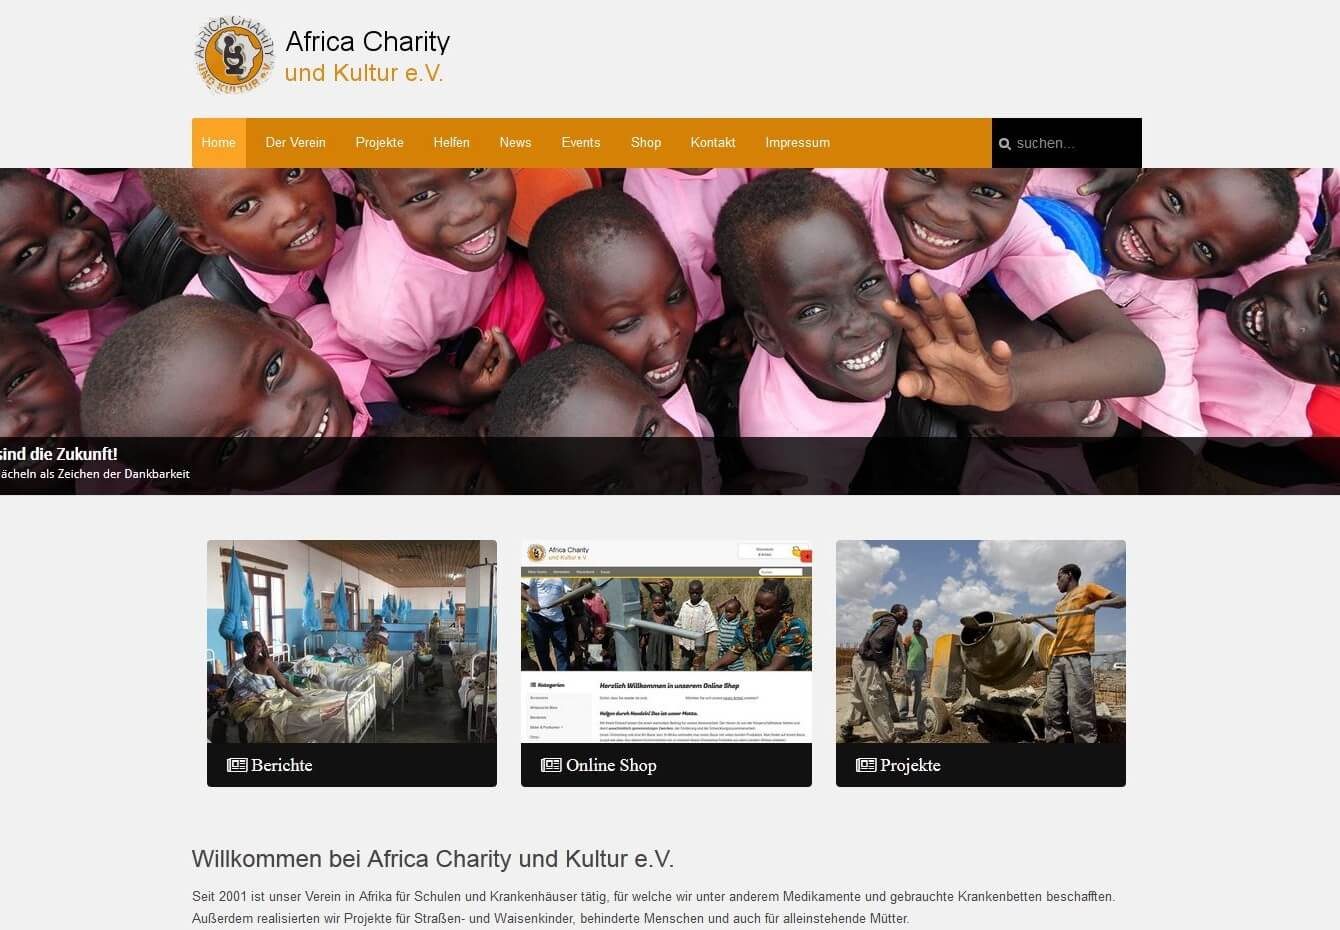 Africa-Charity.org